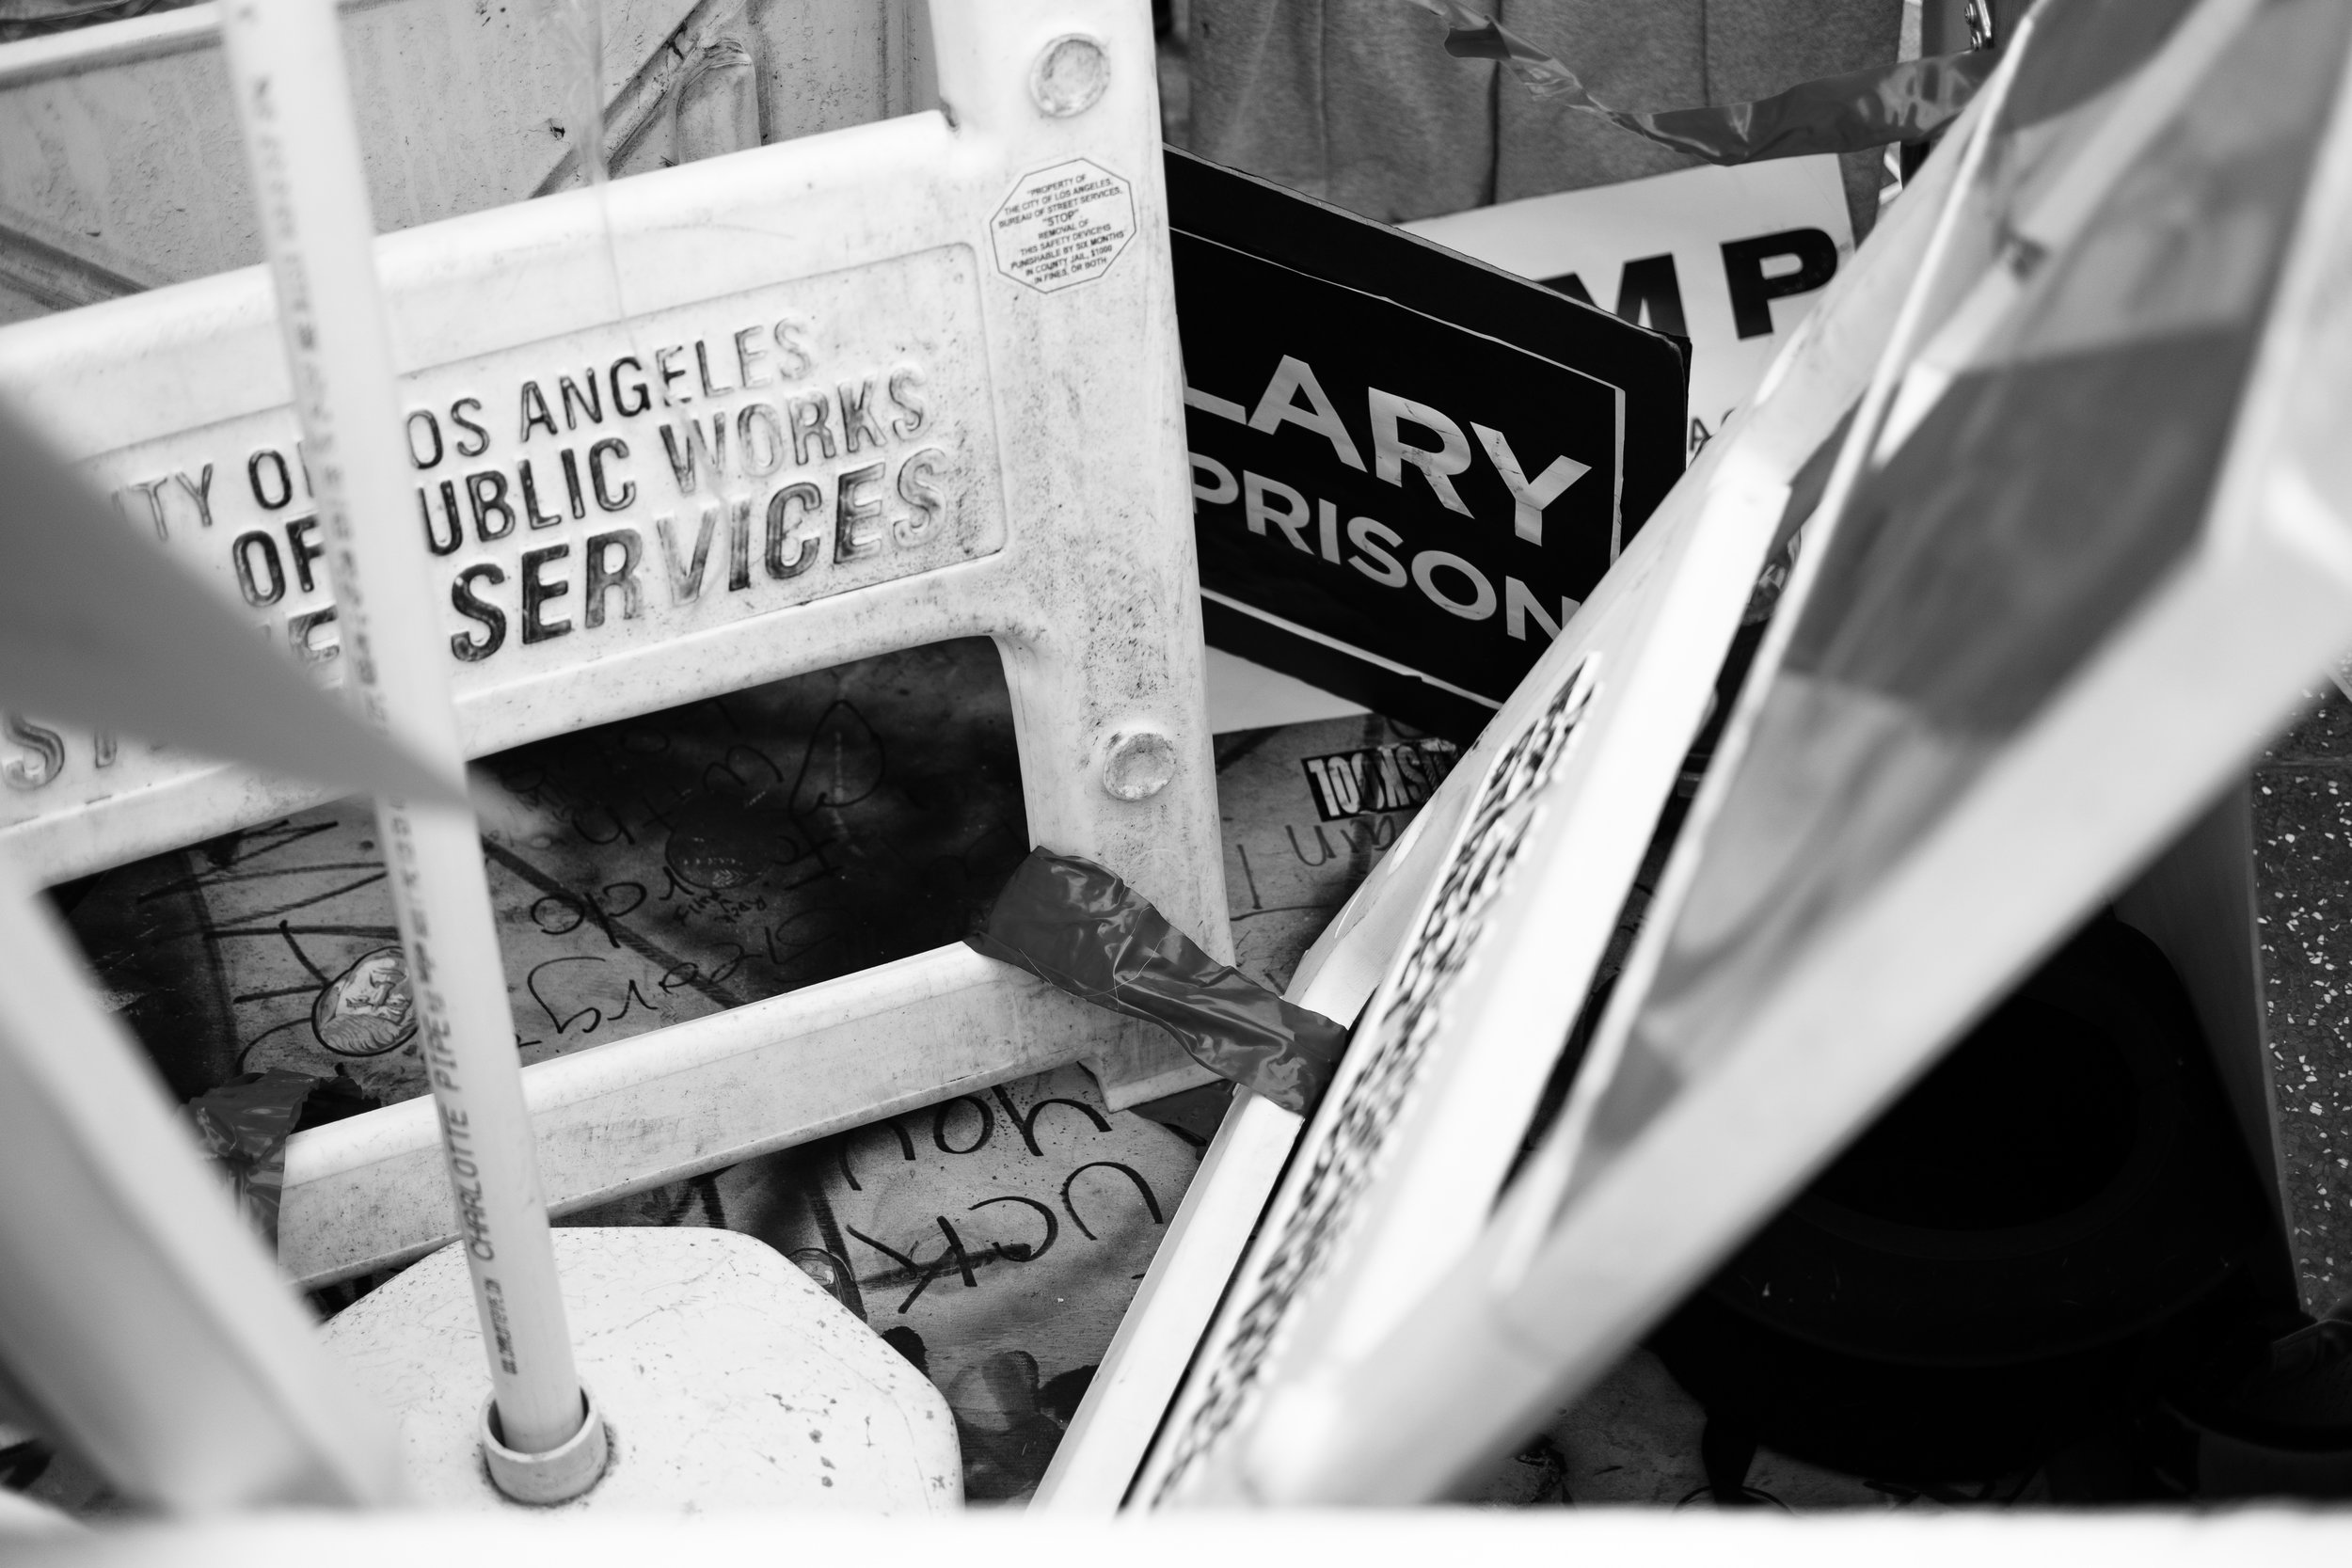 Under the signs and covered by cardboard lay the remains of the vandalized star on the Hollywood Walk of Fame belonging to now President Elect Donald J. Trump.